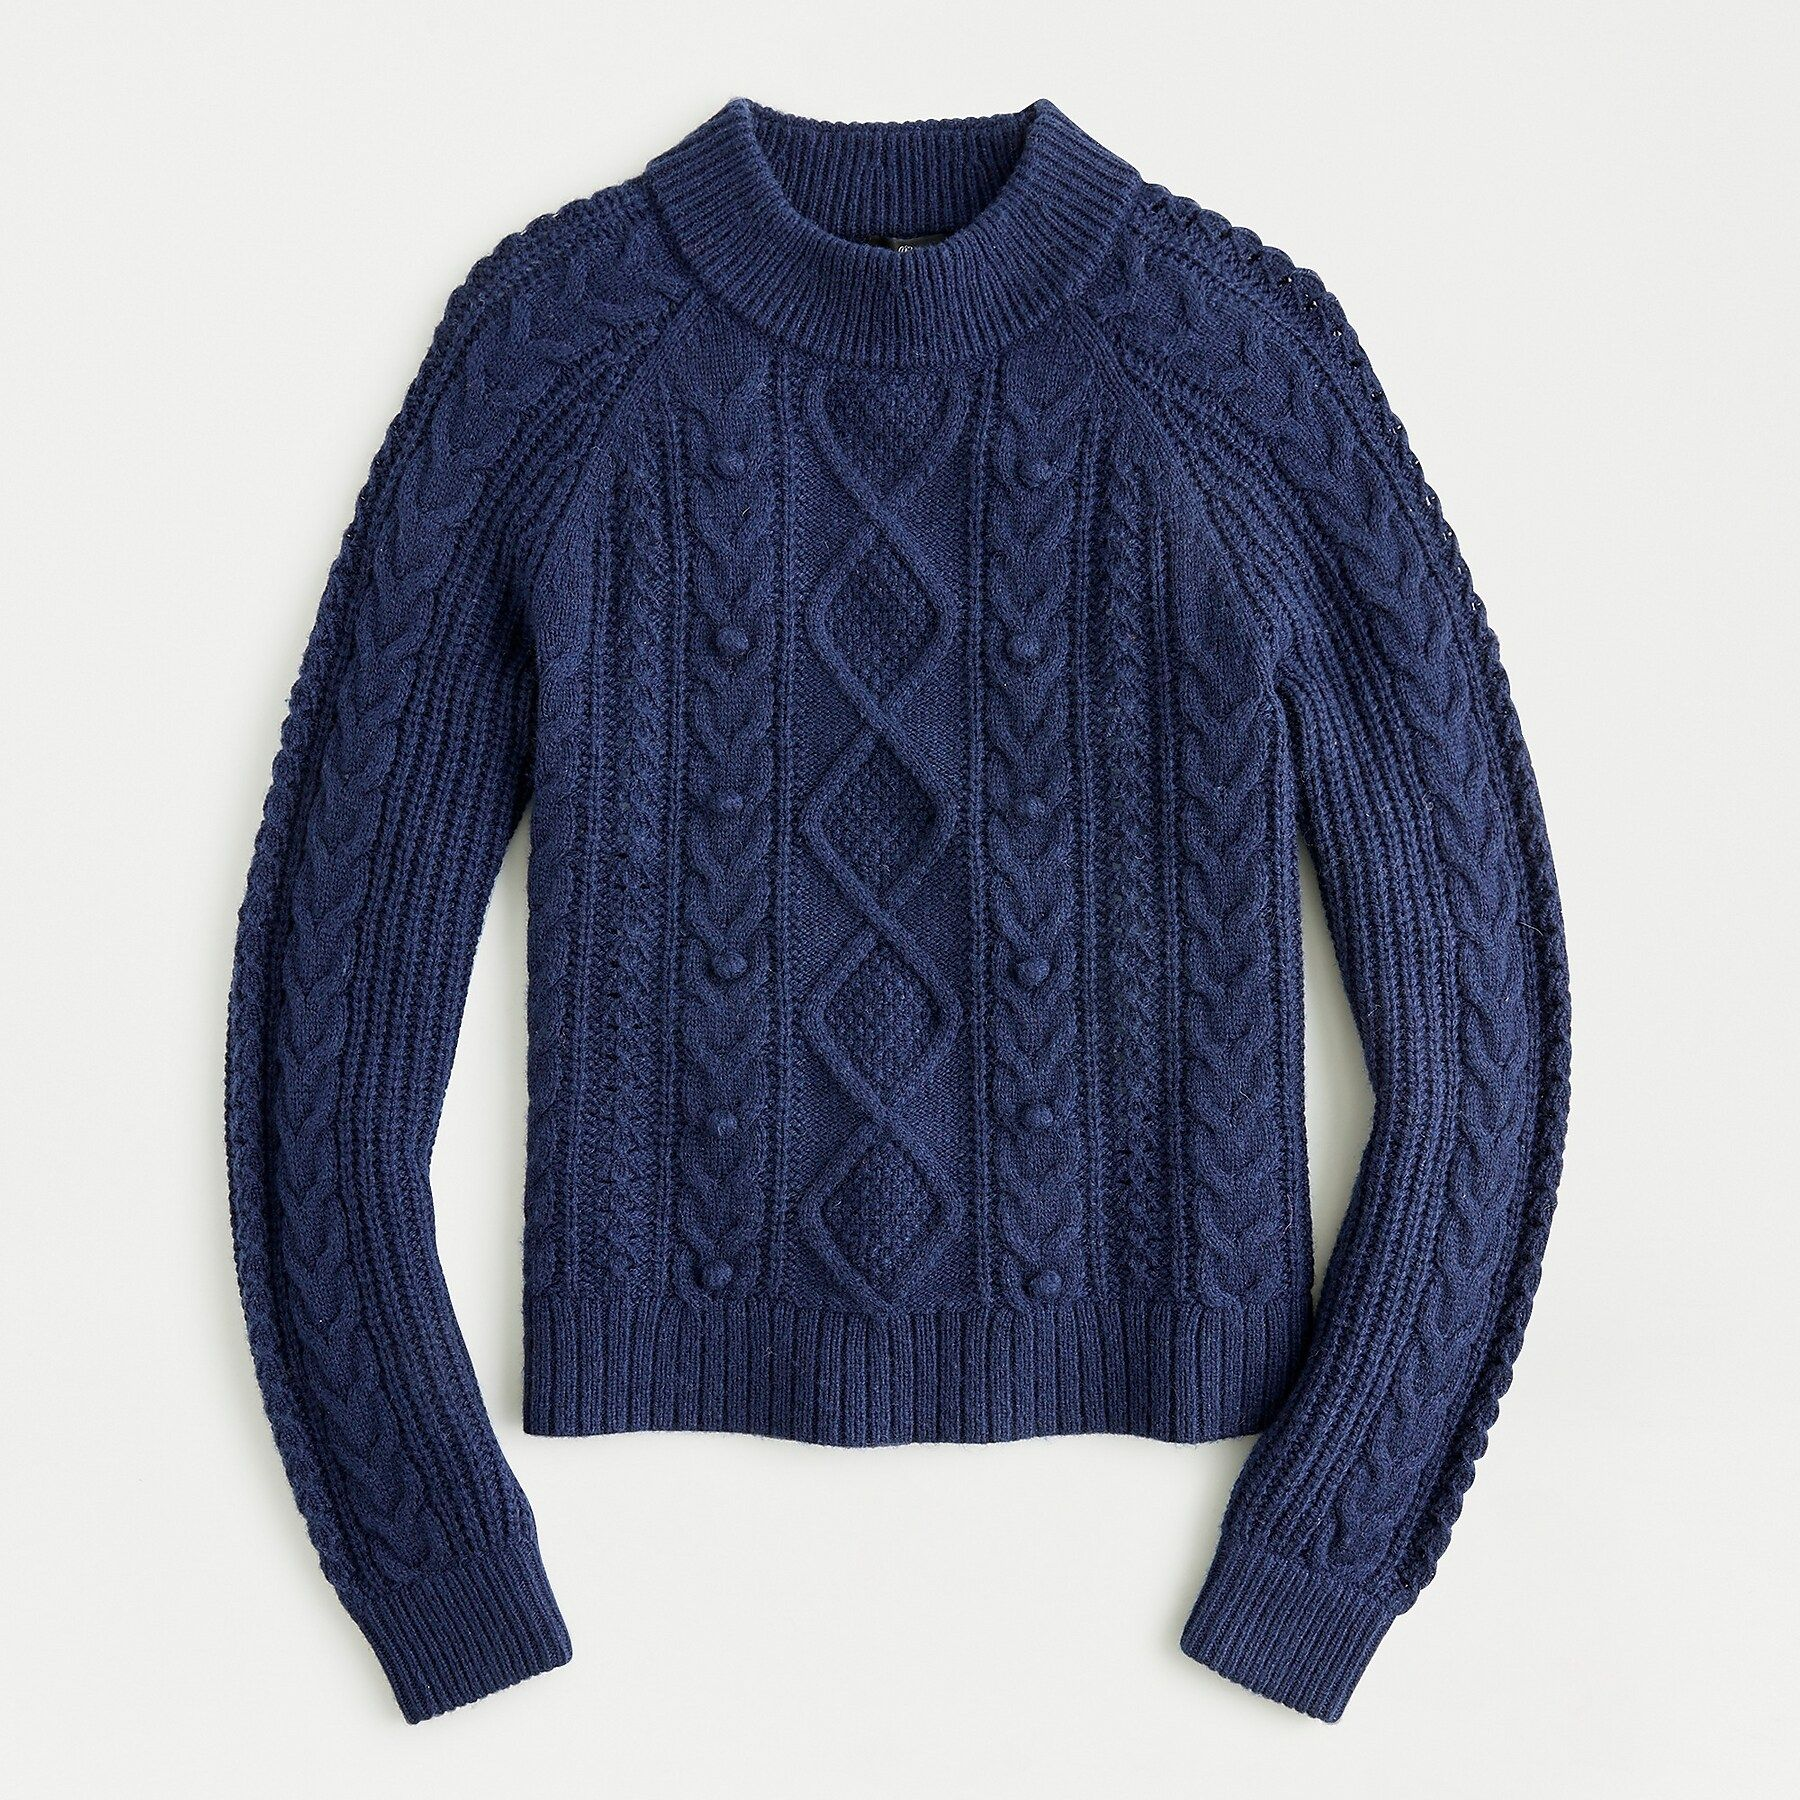 J.Crew: Pom pom Cable knit Sweater | Cable knit sweaters